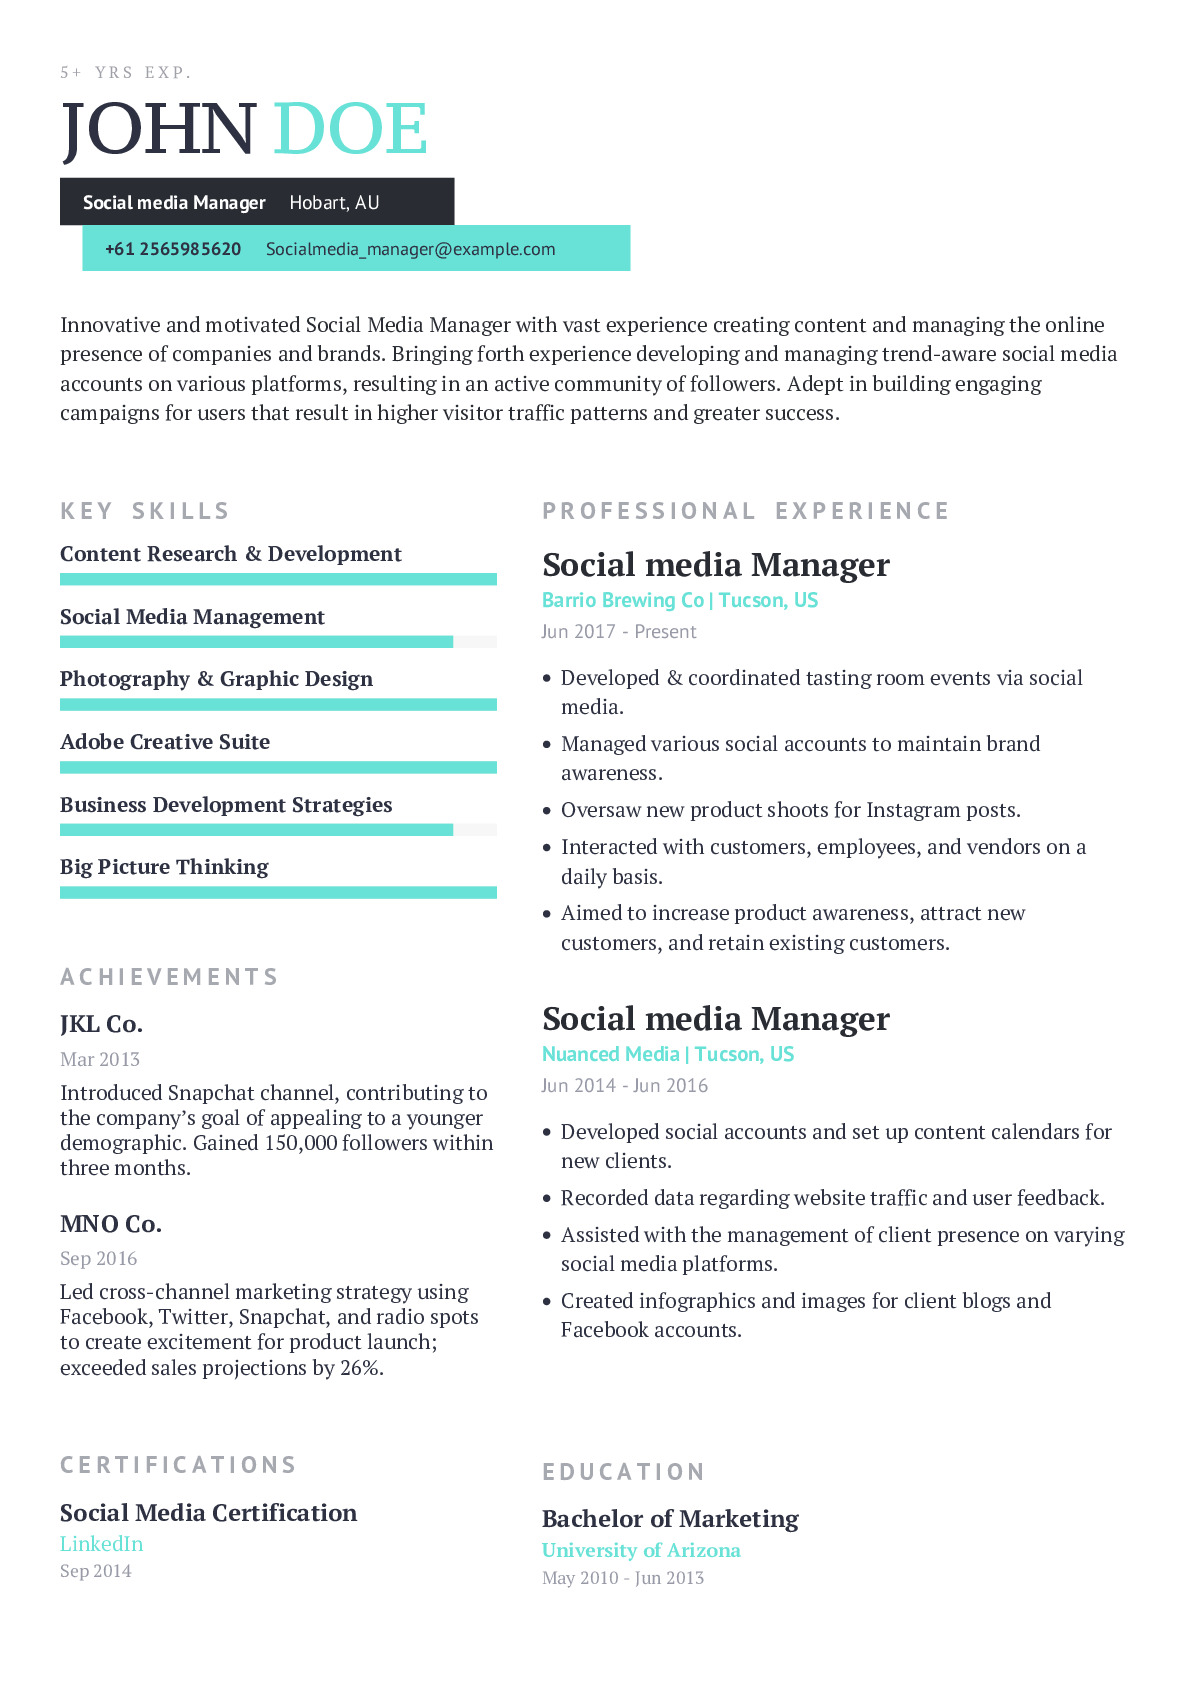 social media manager resume example with content sample craftmycv good objective for Resume Social Media Manager Resume Example